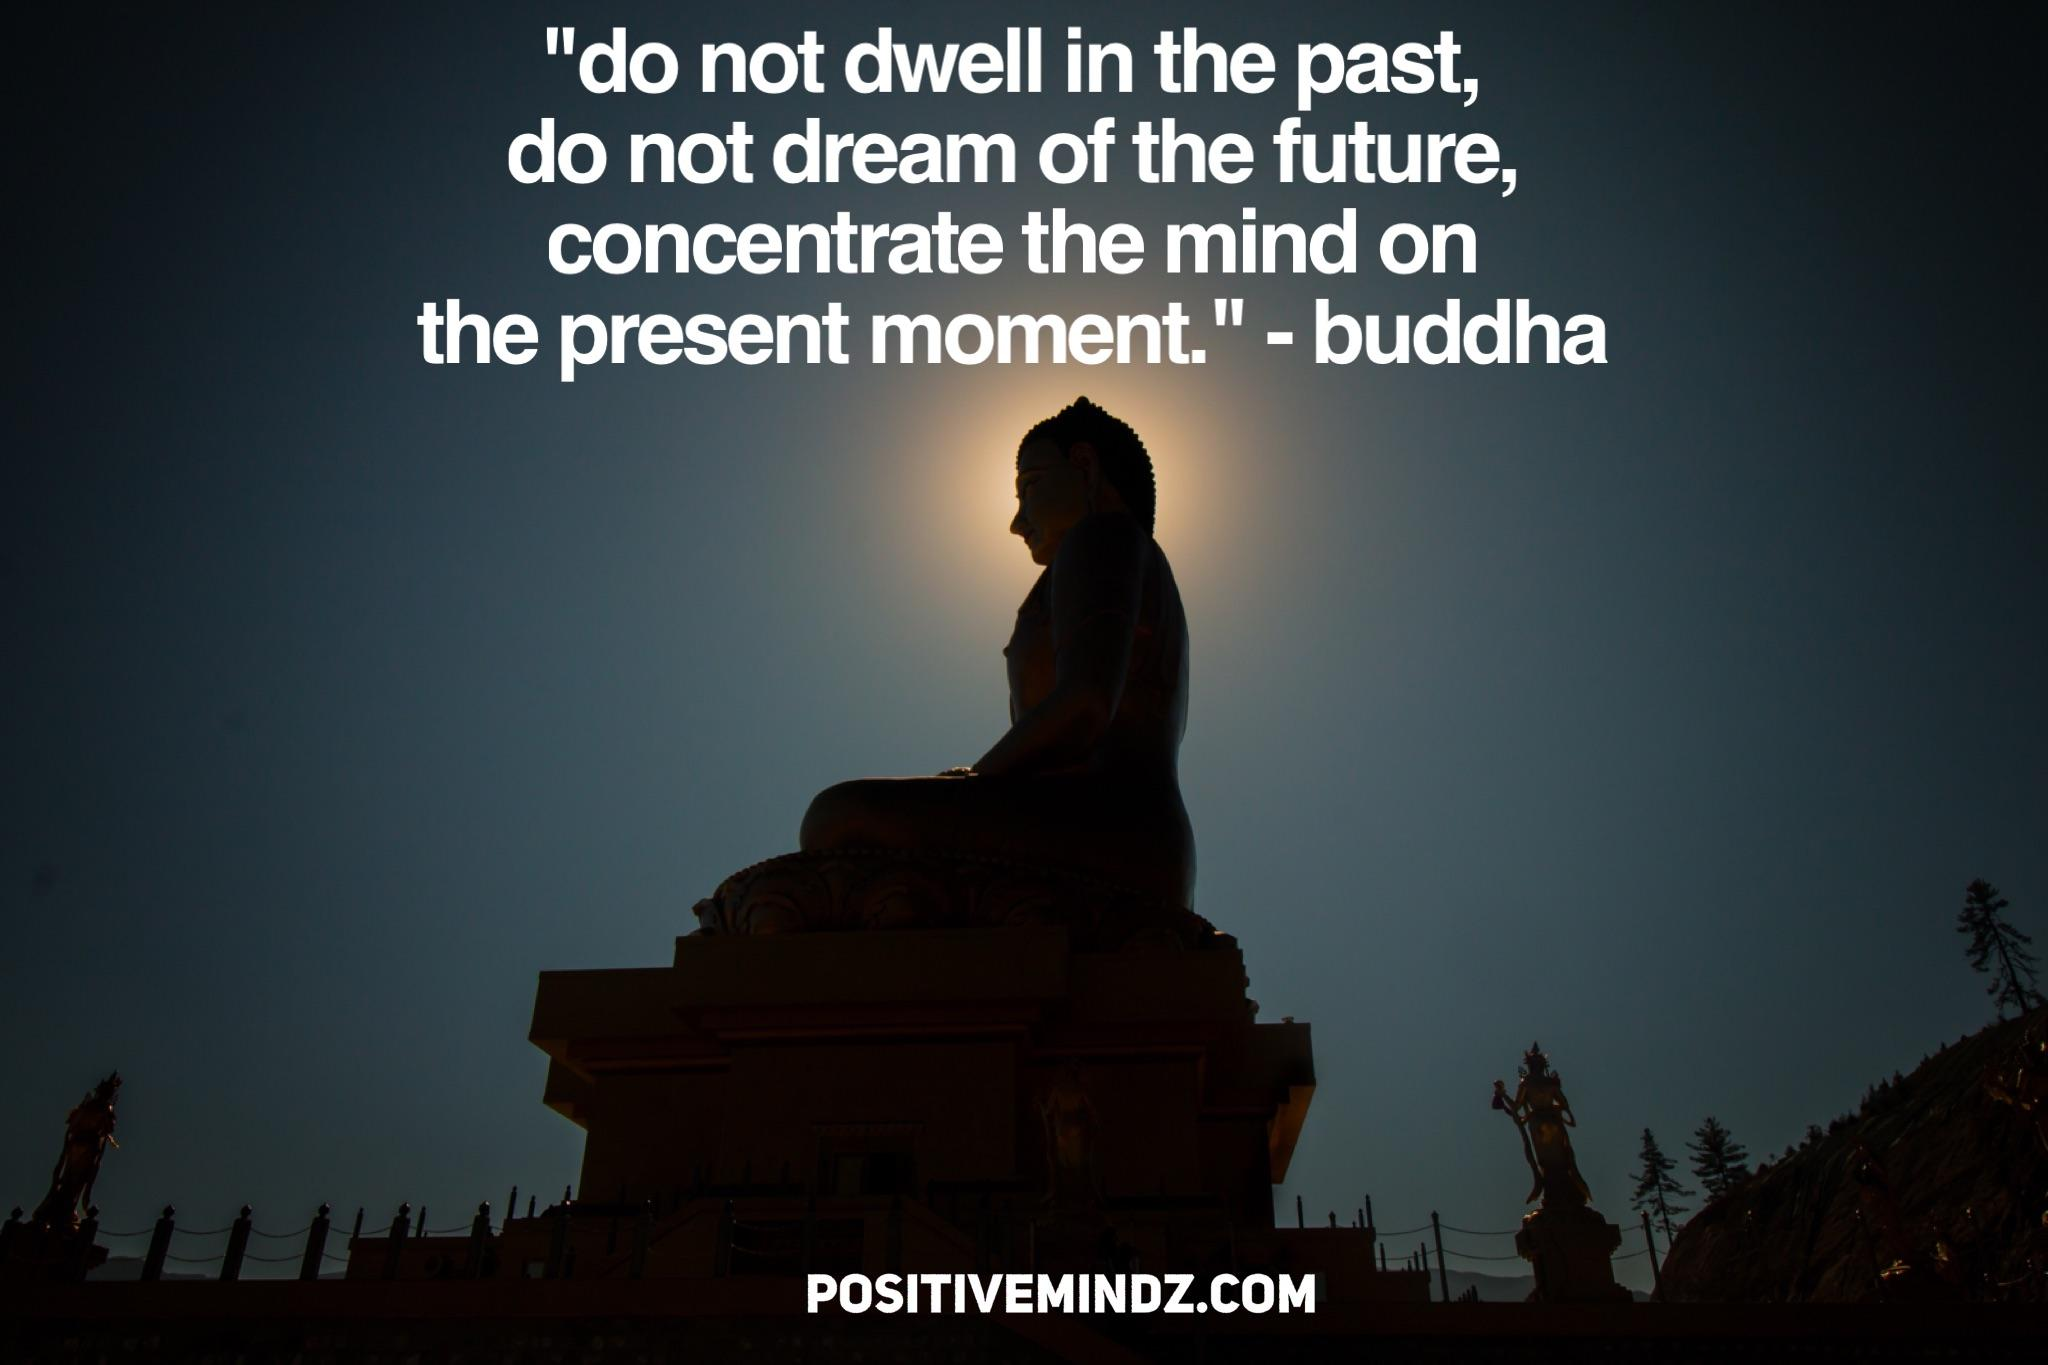 """""""do not dwell in the past, do not dream of the future, concentrate the mind on the present m 1- ."""" - buddha POSITIVEMINDZ.COM https://inspirational.ly"""